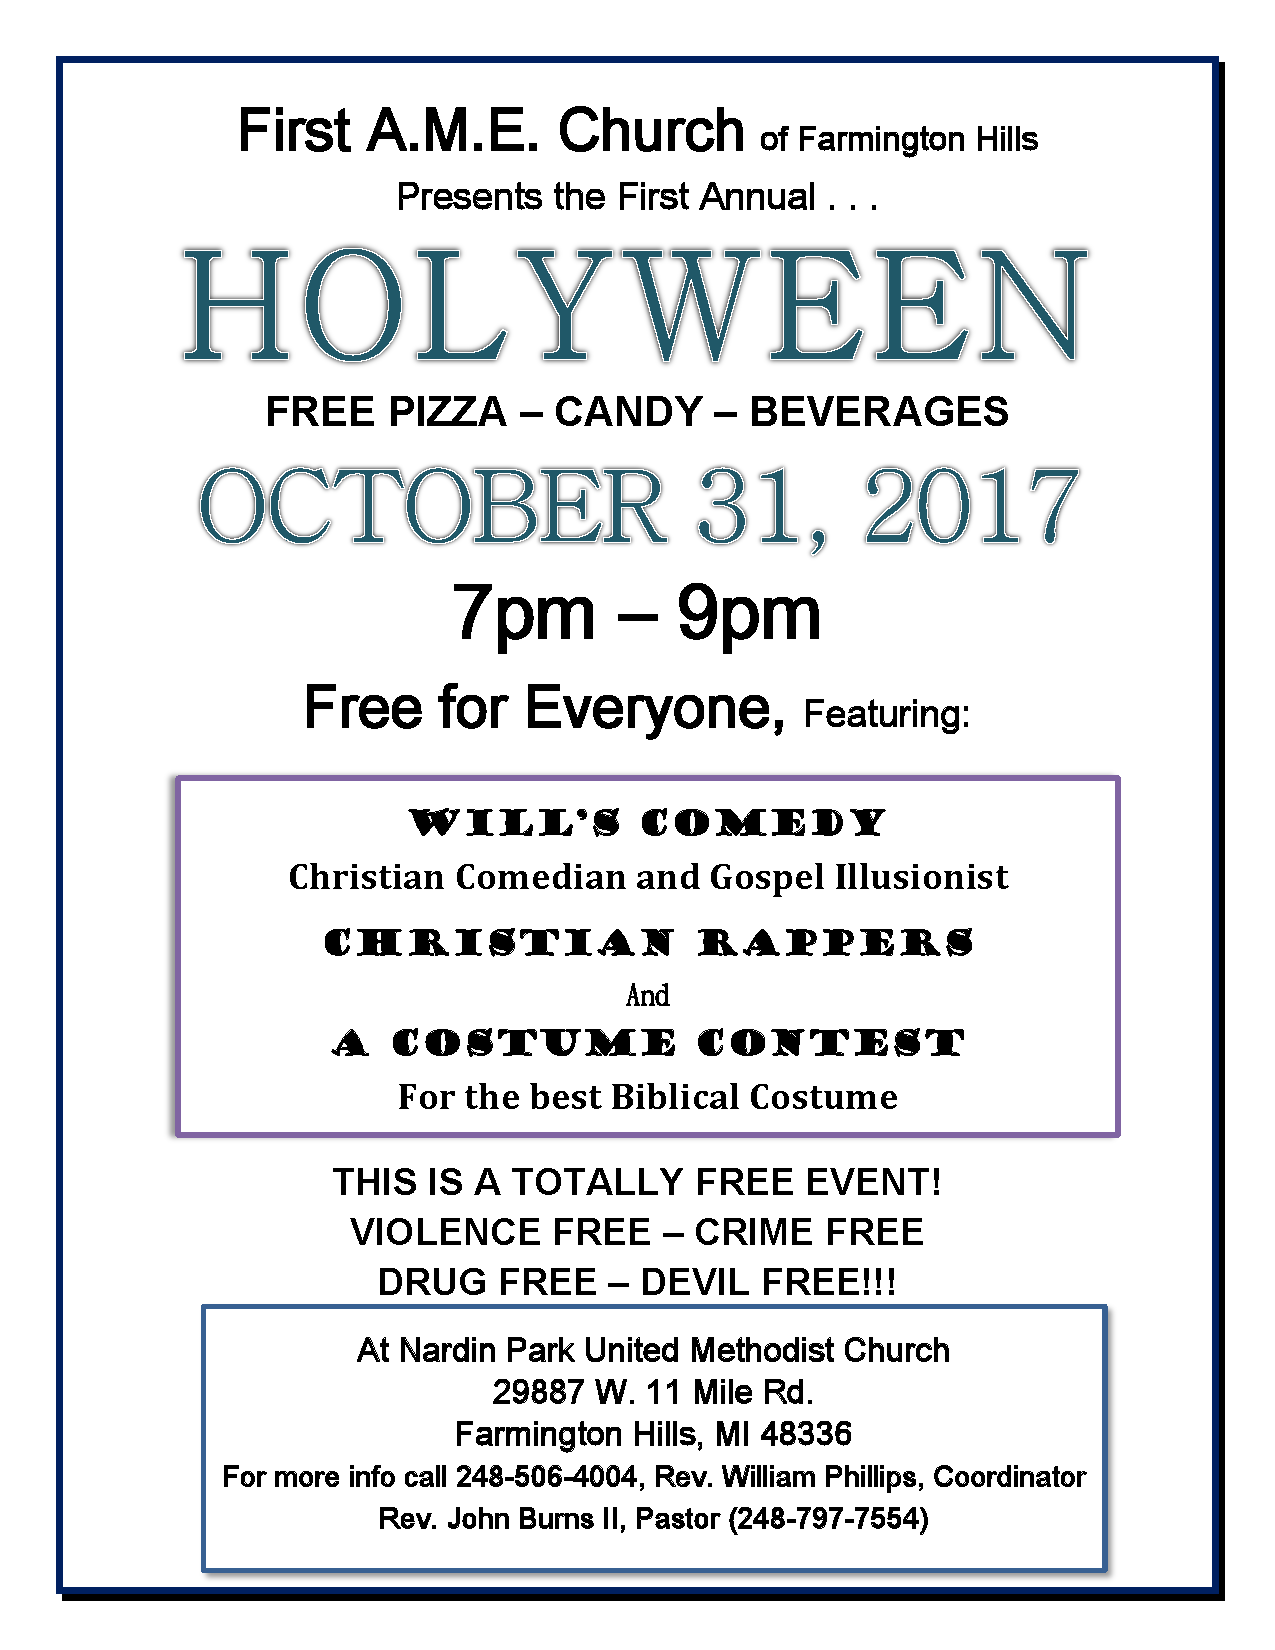 HOLYWEEN 2017 FULL PAGE